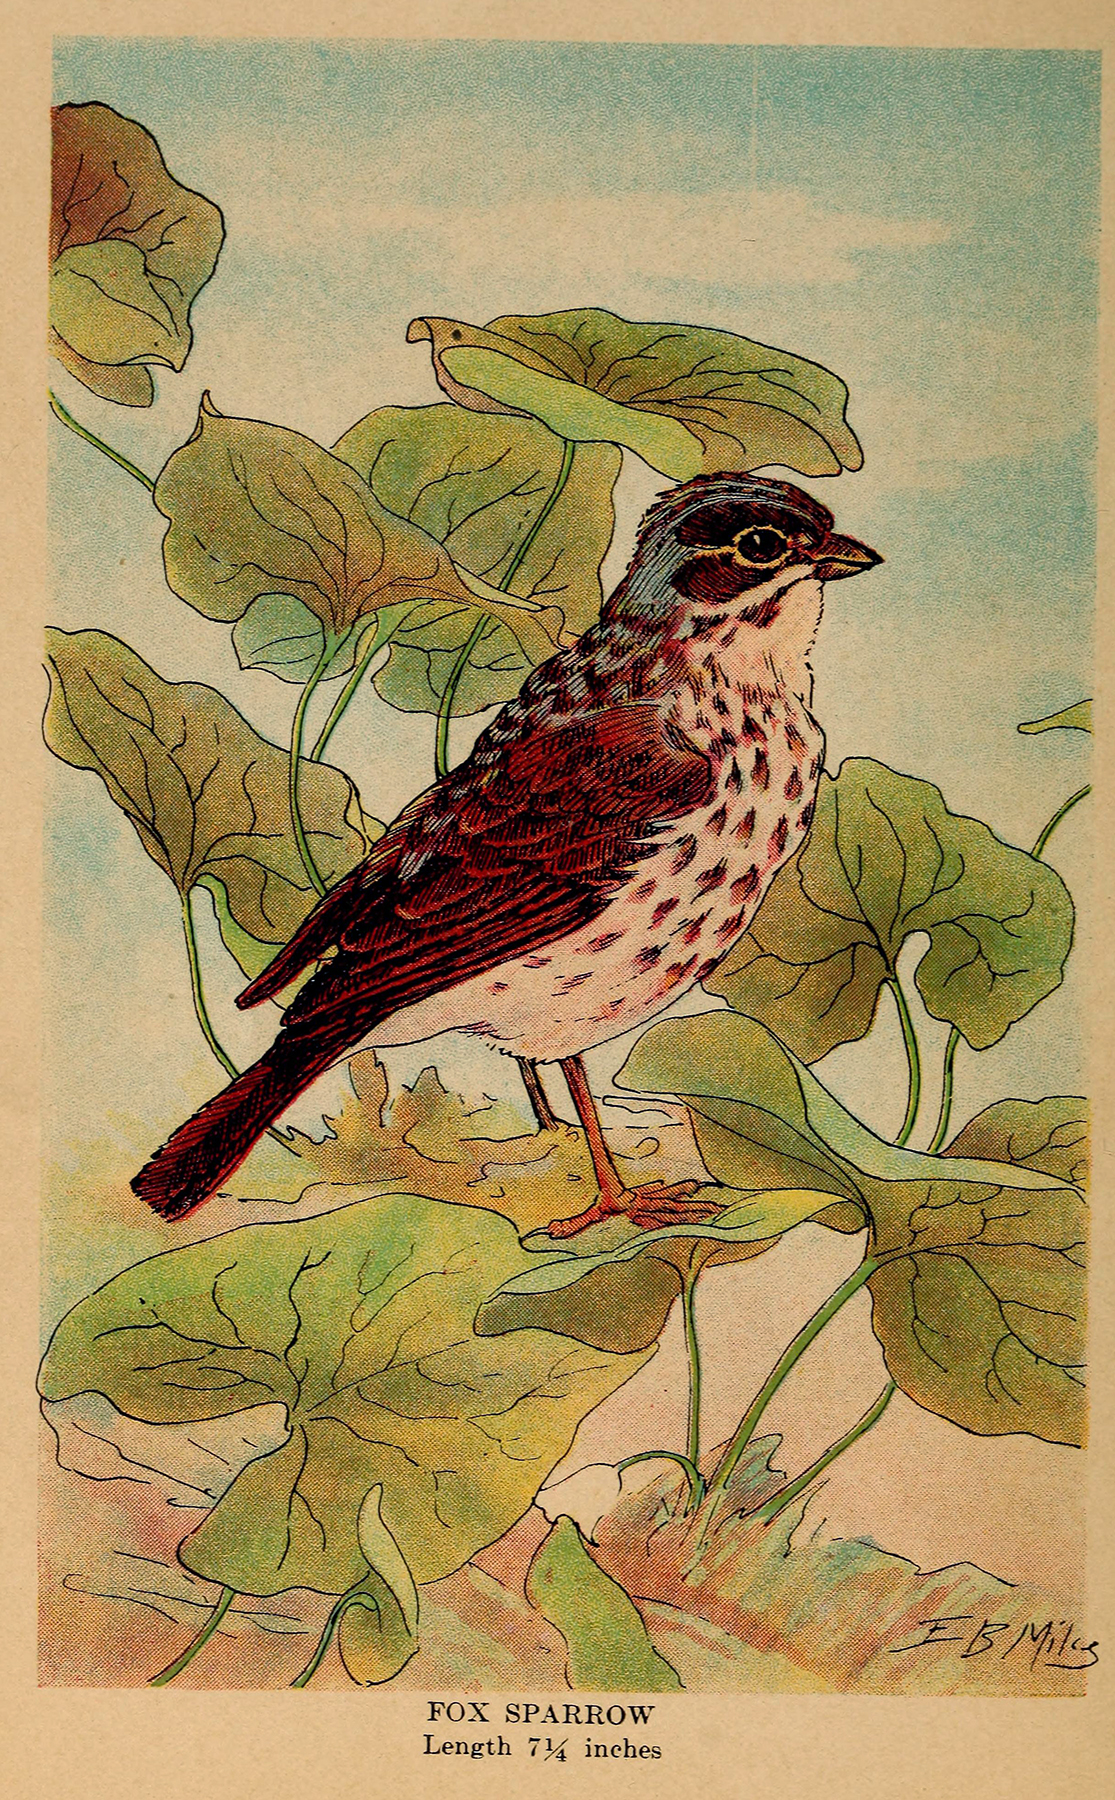 colored illustration of a bird, fox sparrow, brown with blue head and cream belly sitting on branch with green leaves